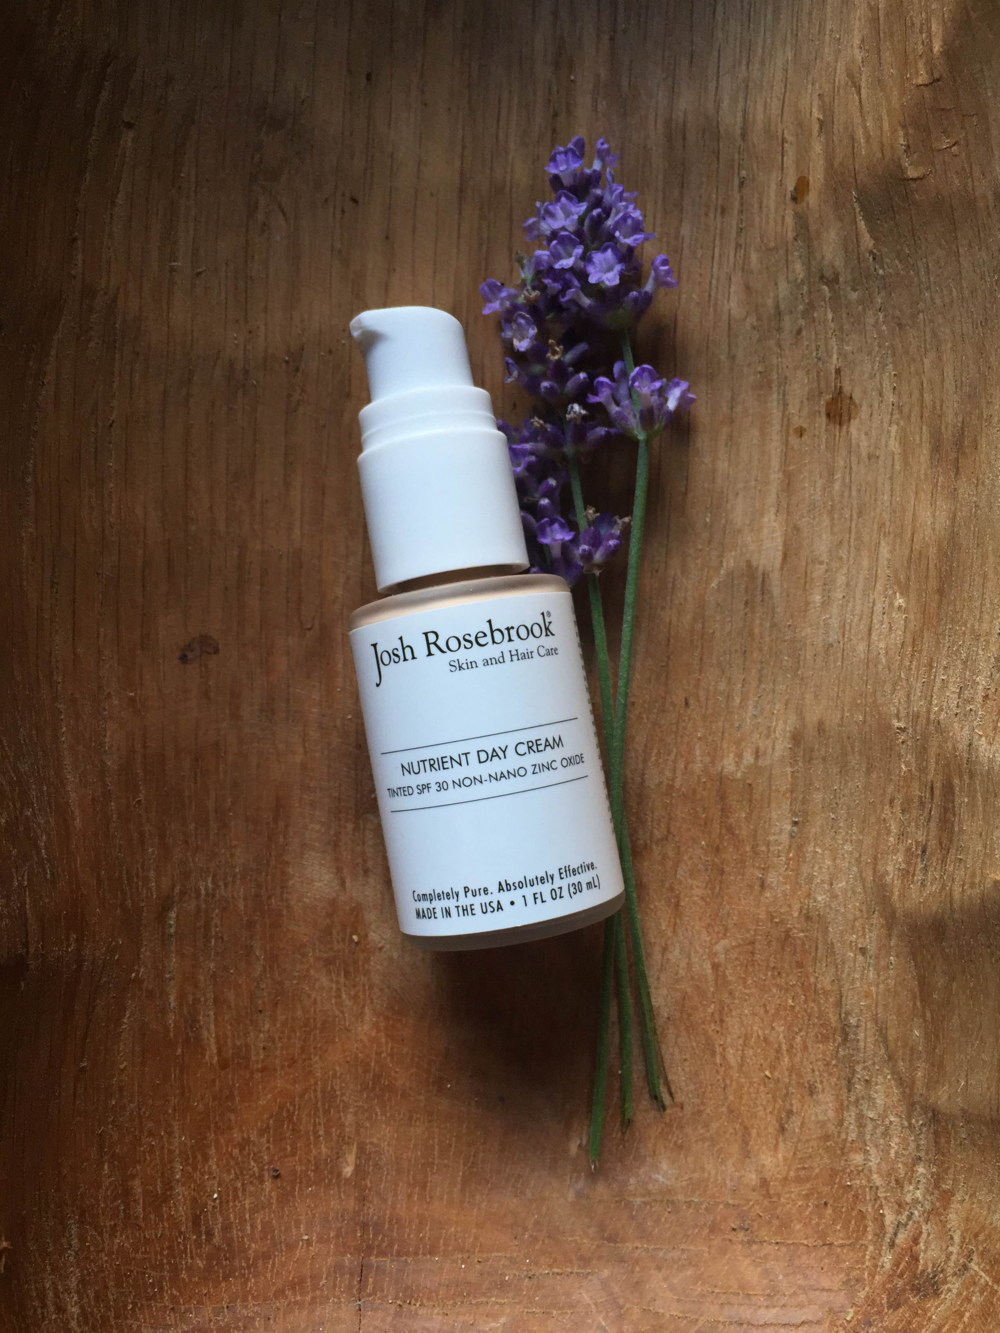 Josh Rosebrook's Nutrient Day Cream Tinted with SPF 30 Non-Nano Zinc Oxide is housed in a 1 fl. oz. (30 ml) frosted glass bottle with a pump. The plastic cap that comes with the product is not pictured in this photo. The Nutrient Day Cream Tinted with SPF 30 retails for $55.